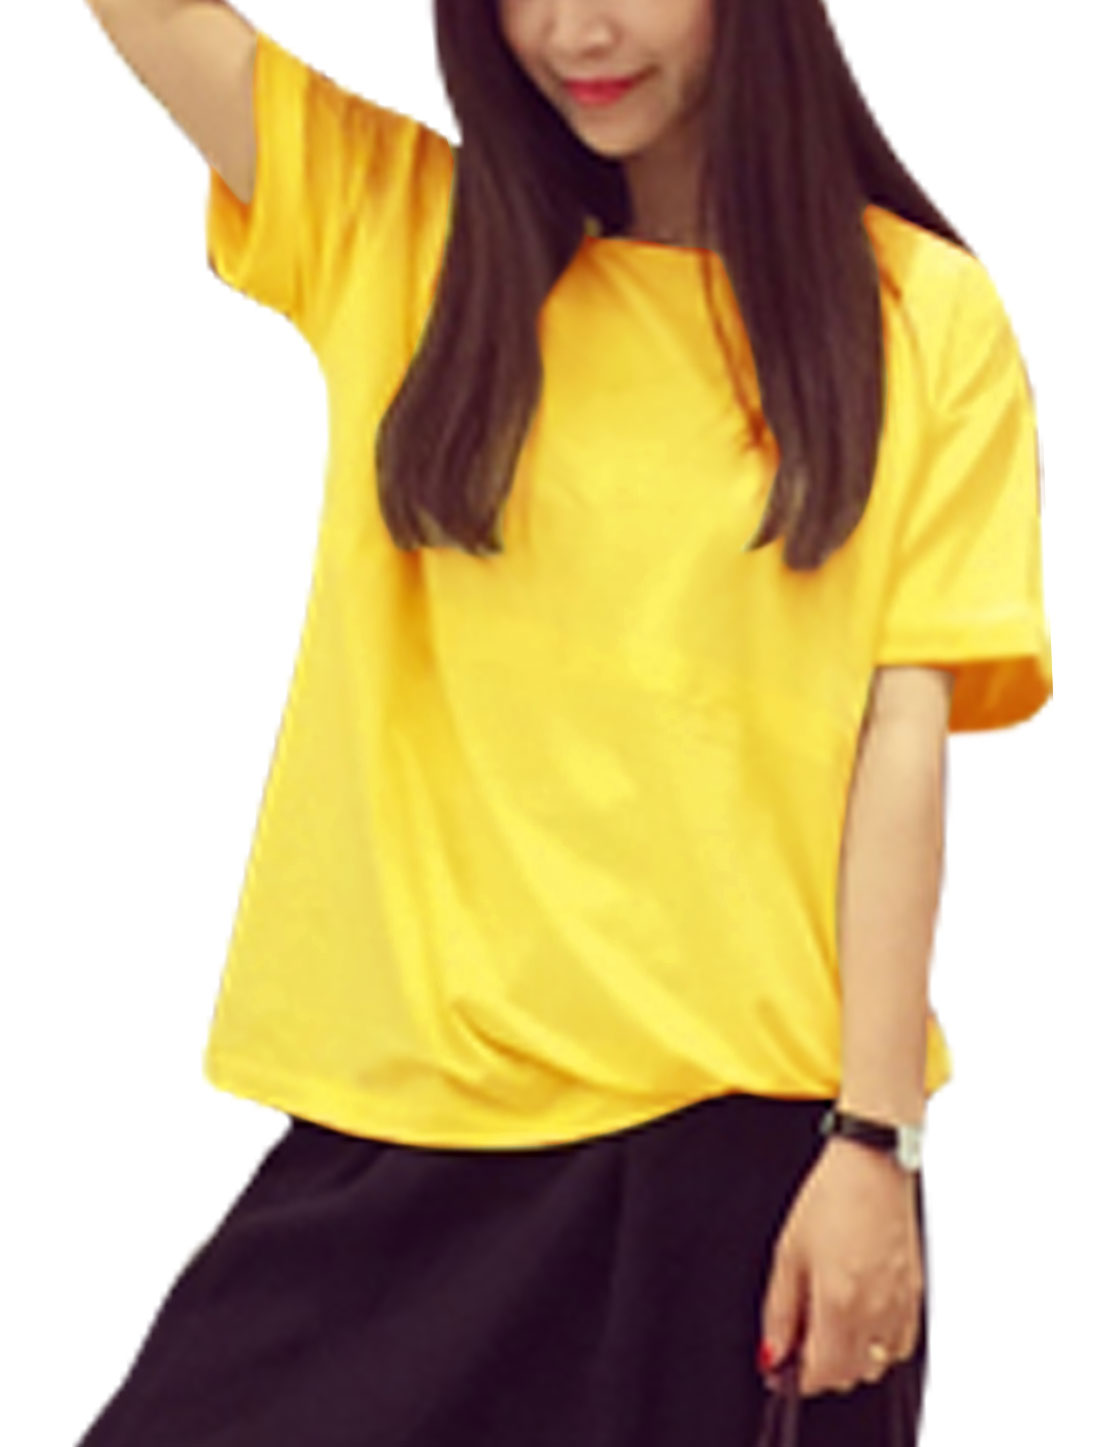 Woman Round Neck Cuffed Short Dolman Sleeves Loose Top Yellow XS